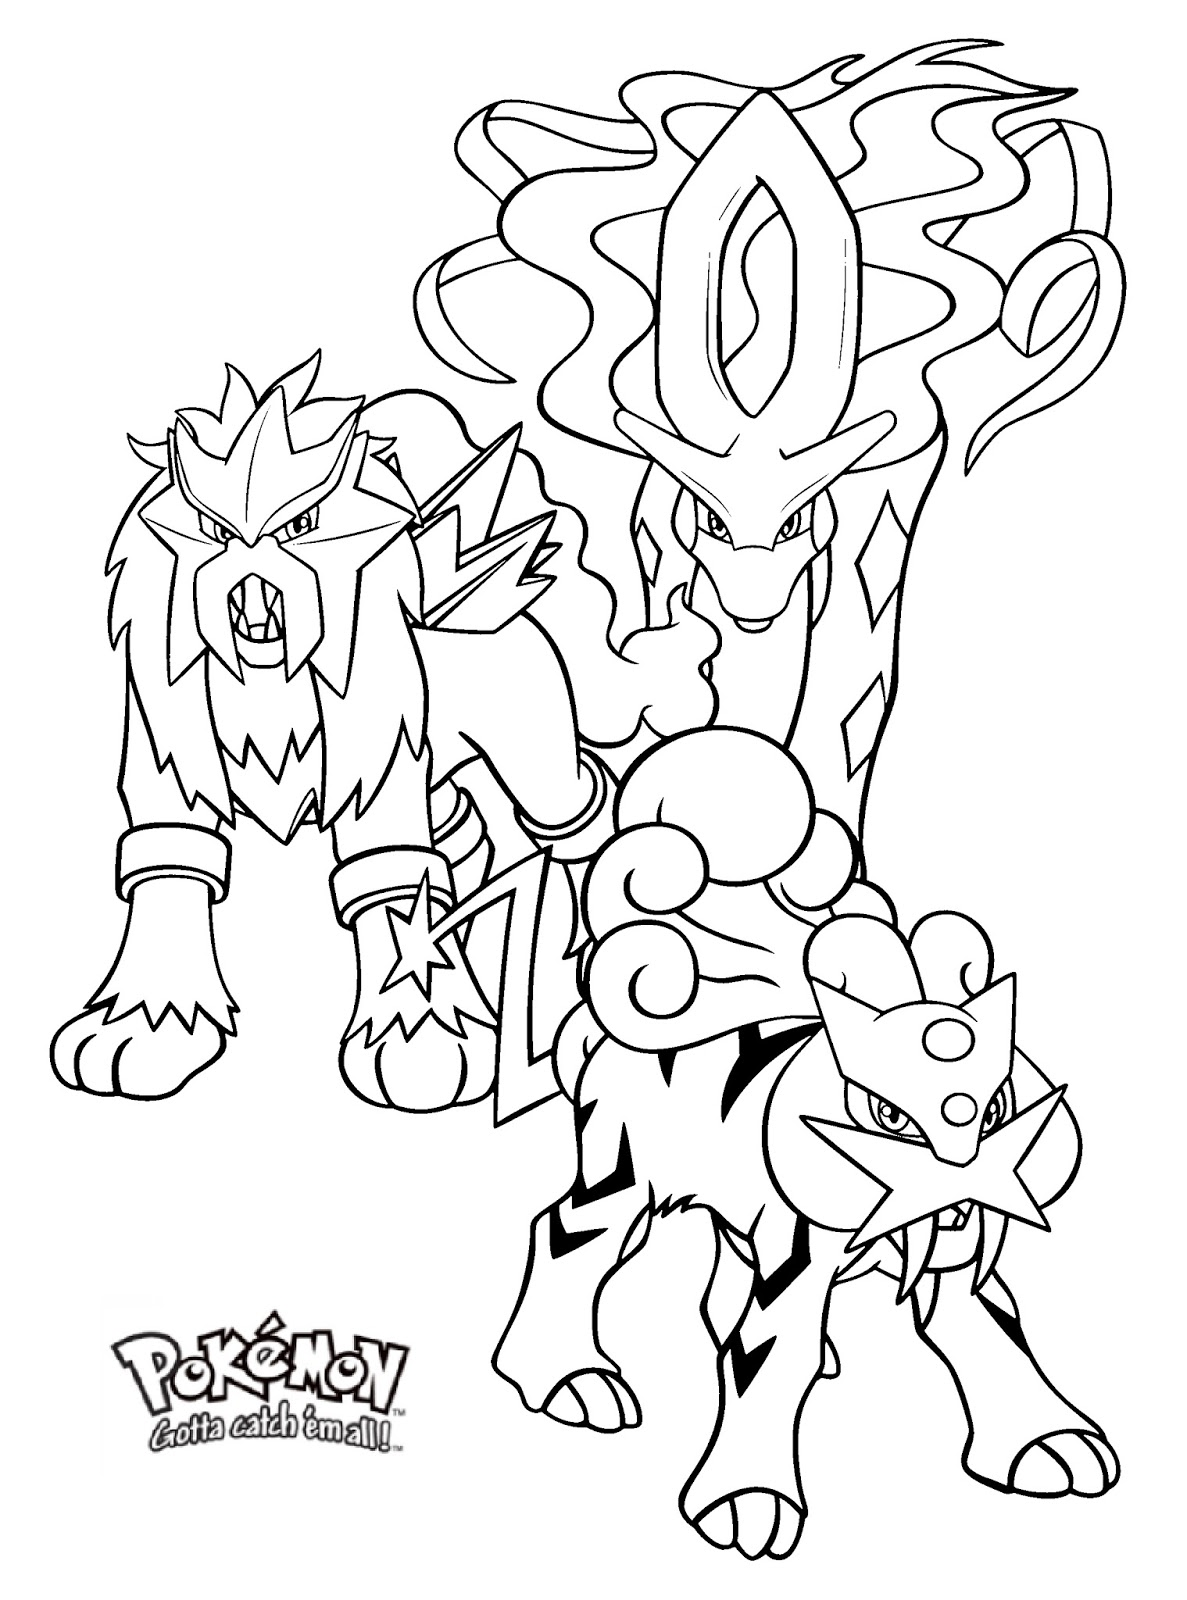 Best Free All Legendary Pokemon Coloring Pages Image